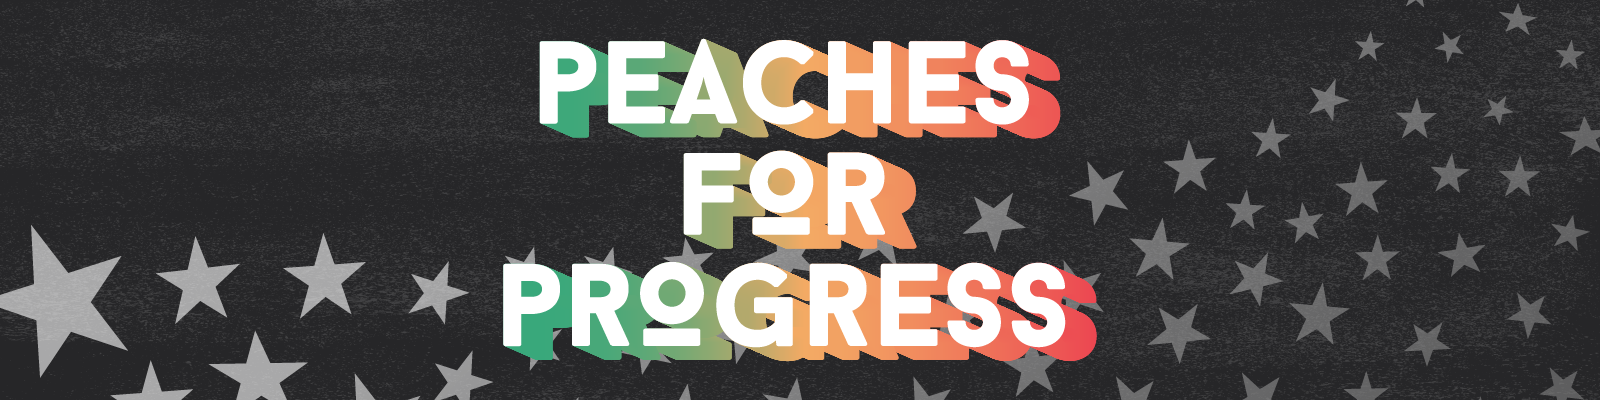 Peaches for Progress